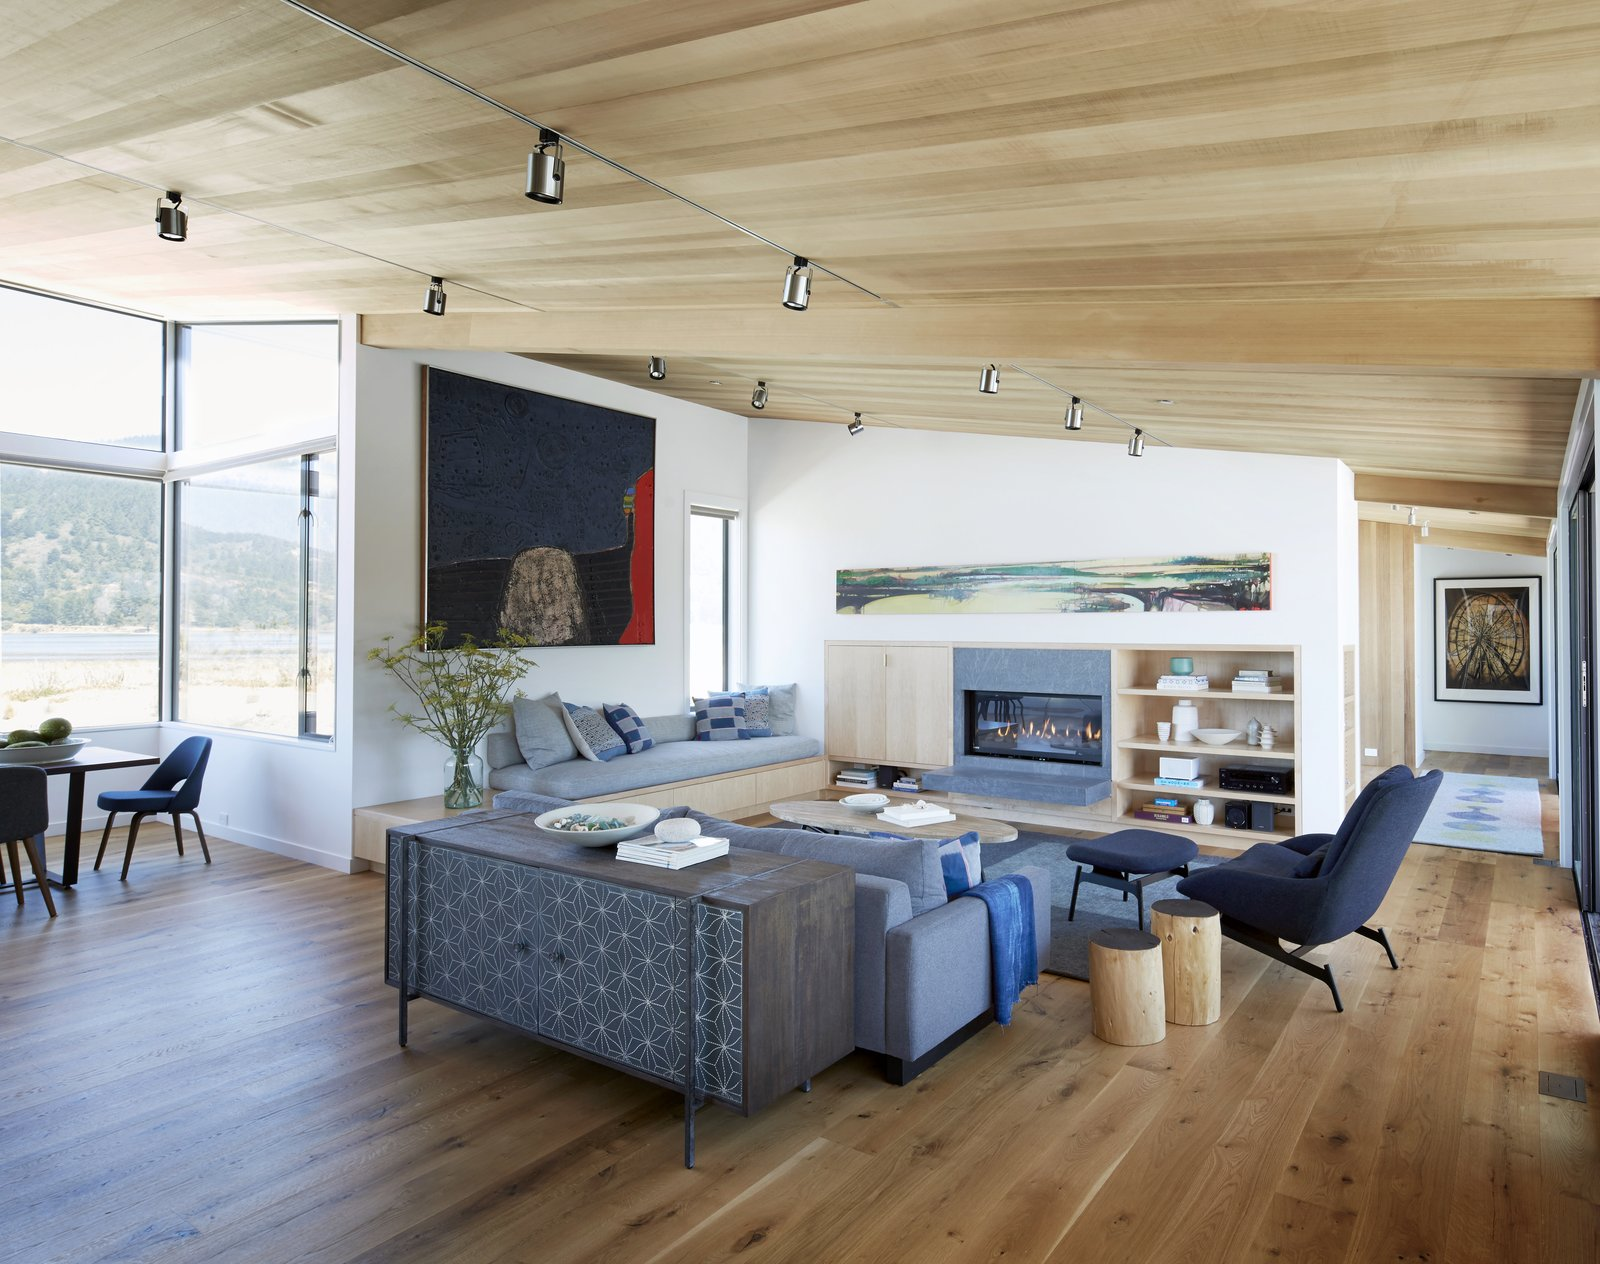 #TurnbullGriffinHaesloop #interior #livingroom #fireplace  Stinson Beach Lagoon Residence by Turnbull Griffin Haesloop Architects